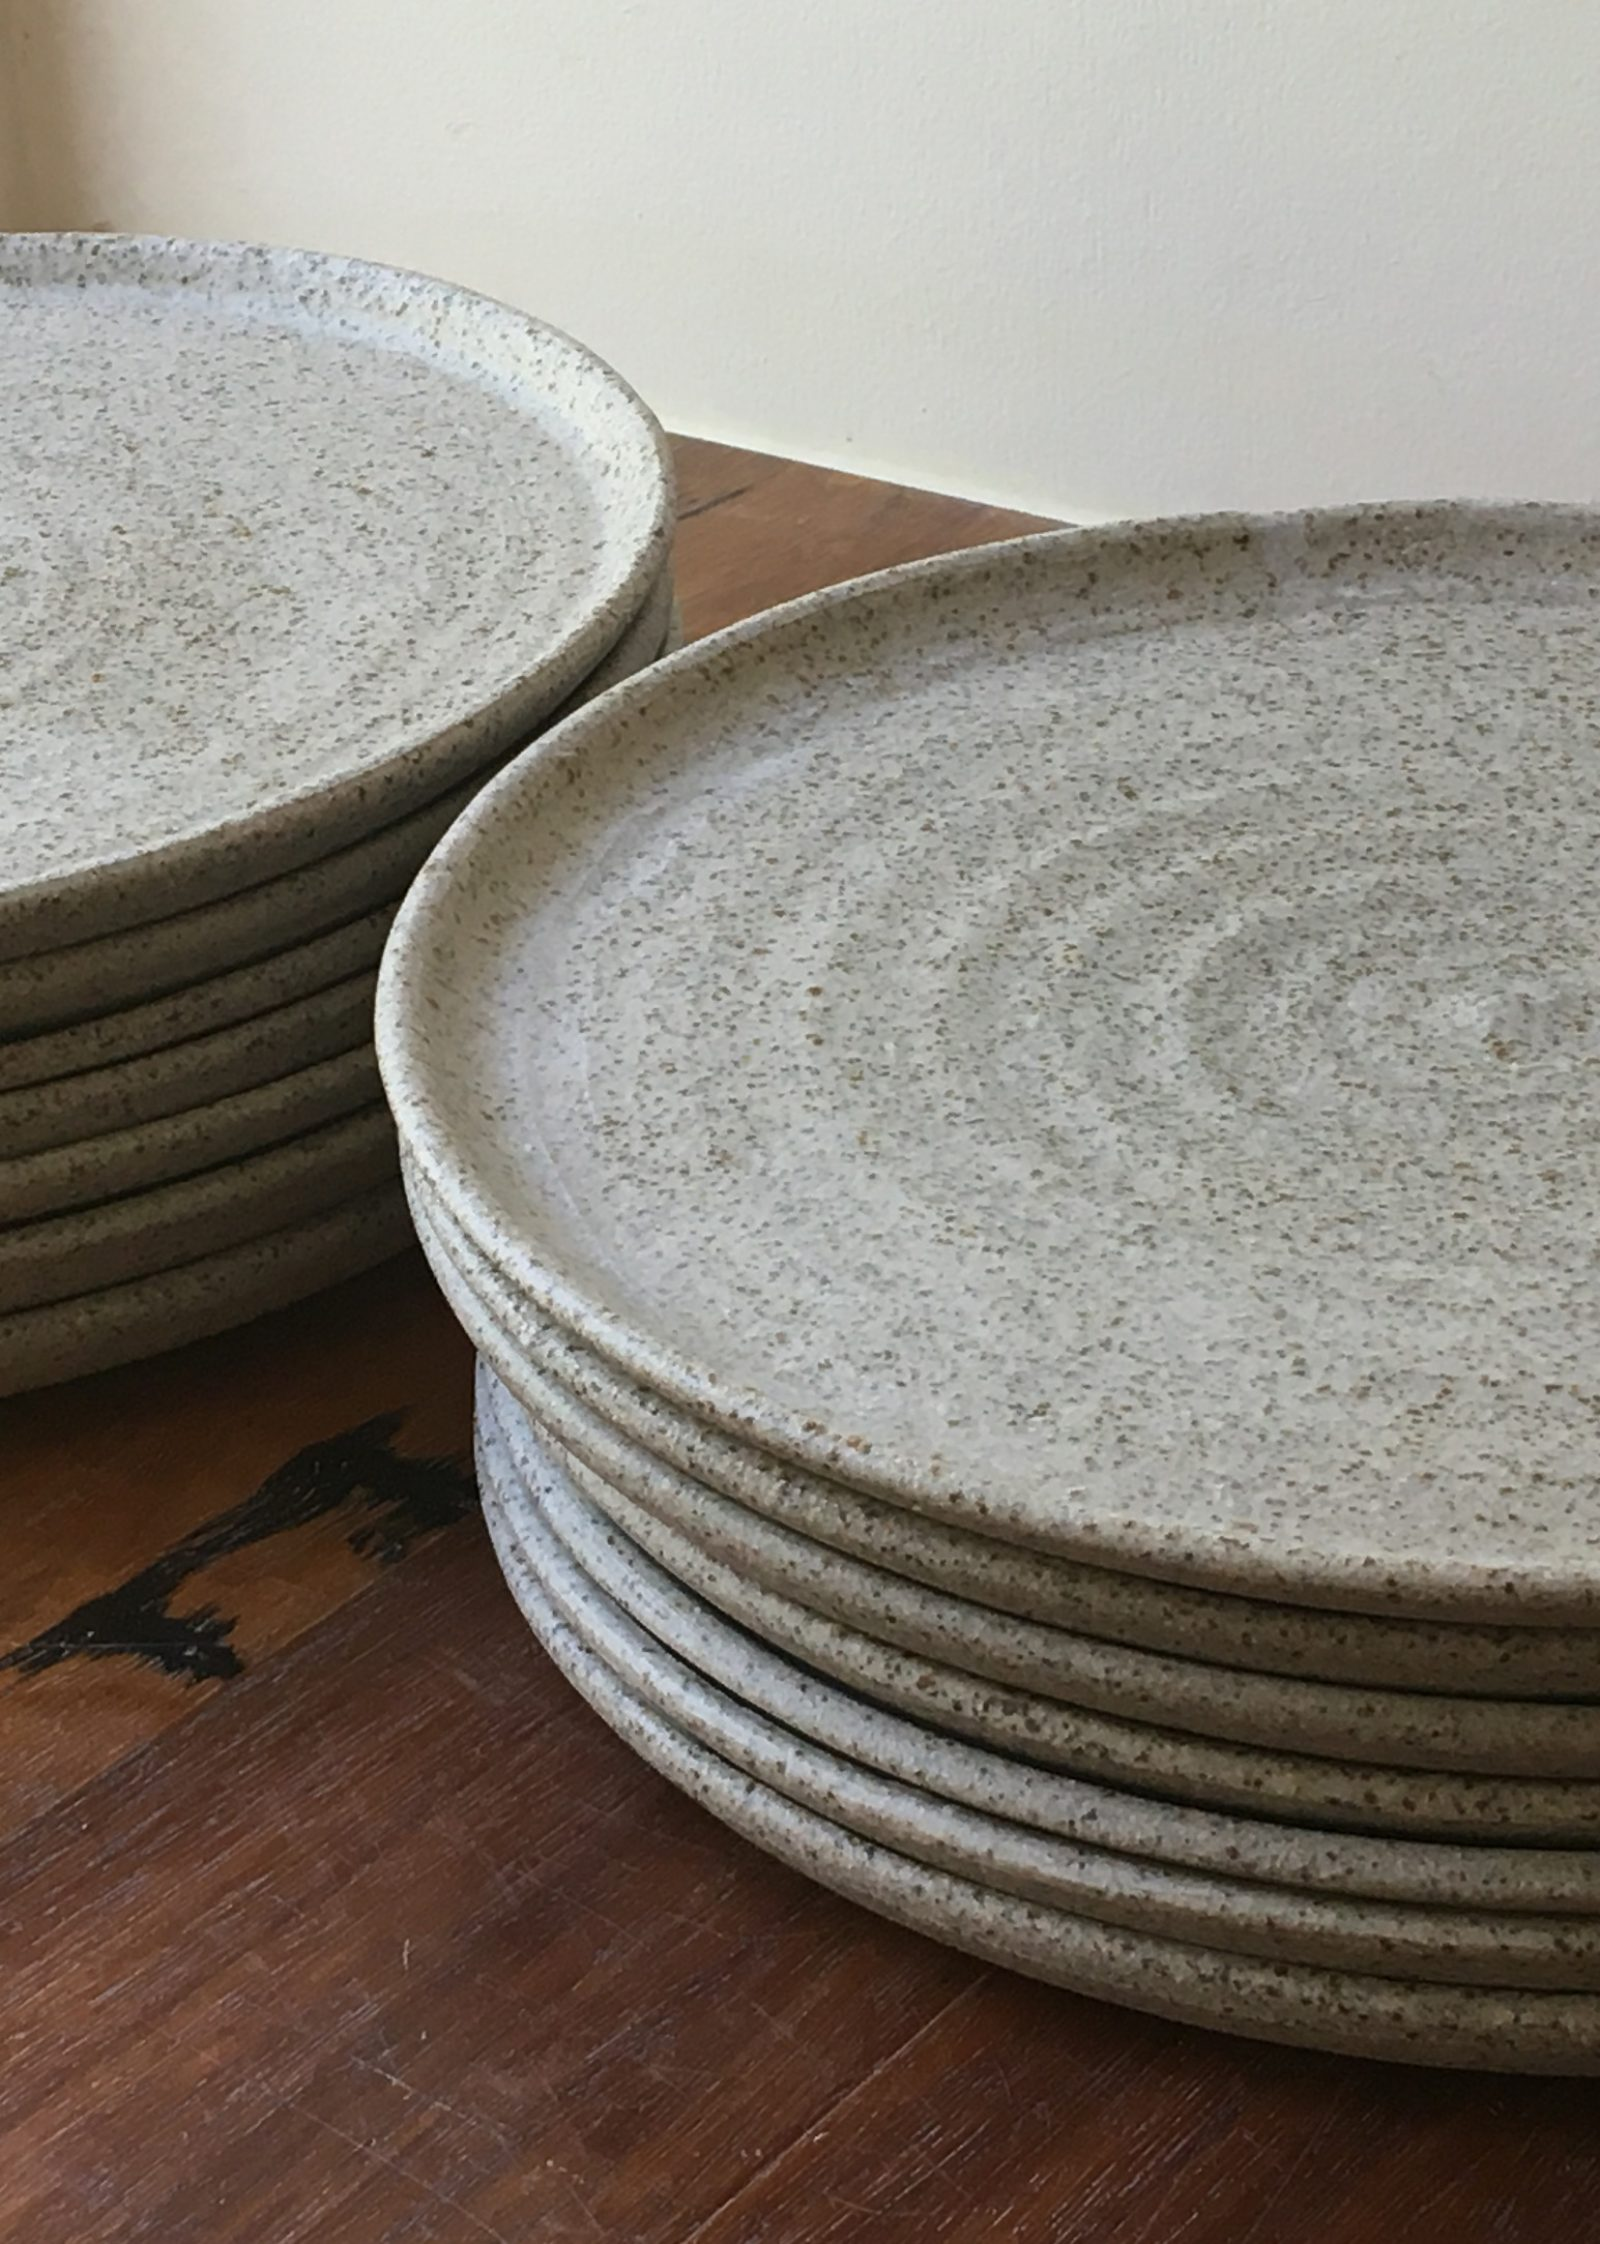 Josephine Townsend, ceramic plates, 27cm. Photo: Courtesy of the artist.